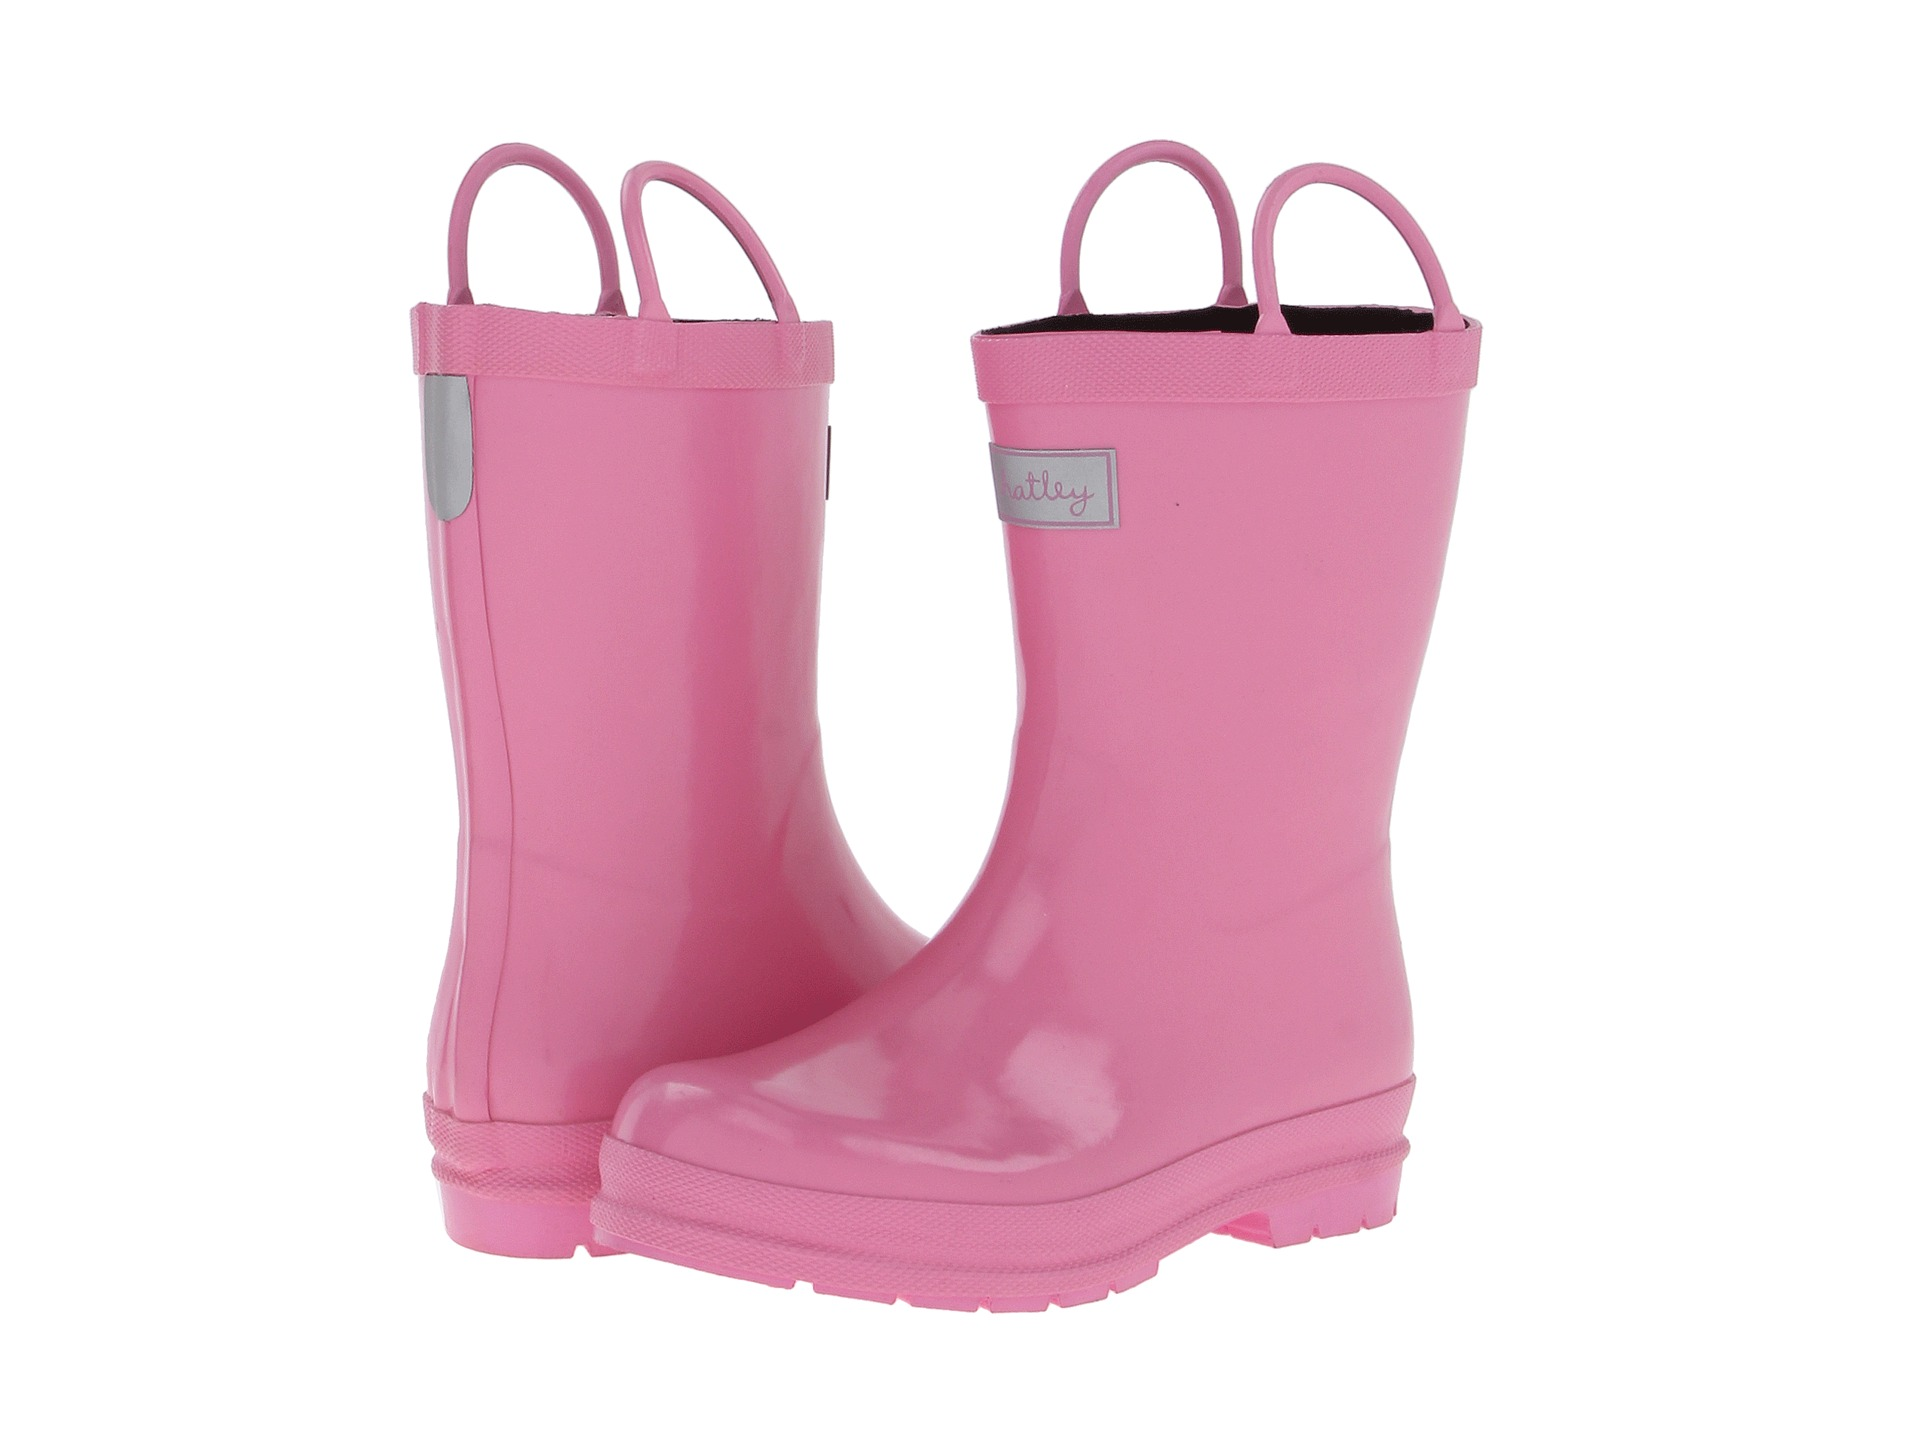 Free shipping BOTH ways on pink toddler rain boots, from our vast selection of styles. Fast delivery, and 24/7/ real-person service with a smile. Click or call